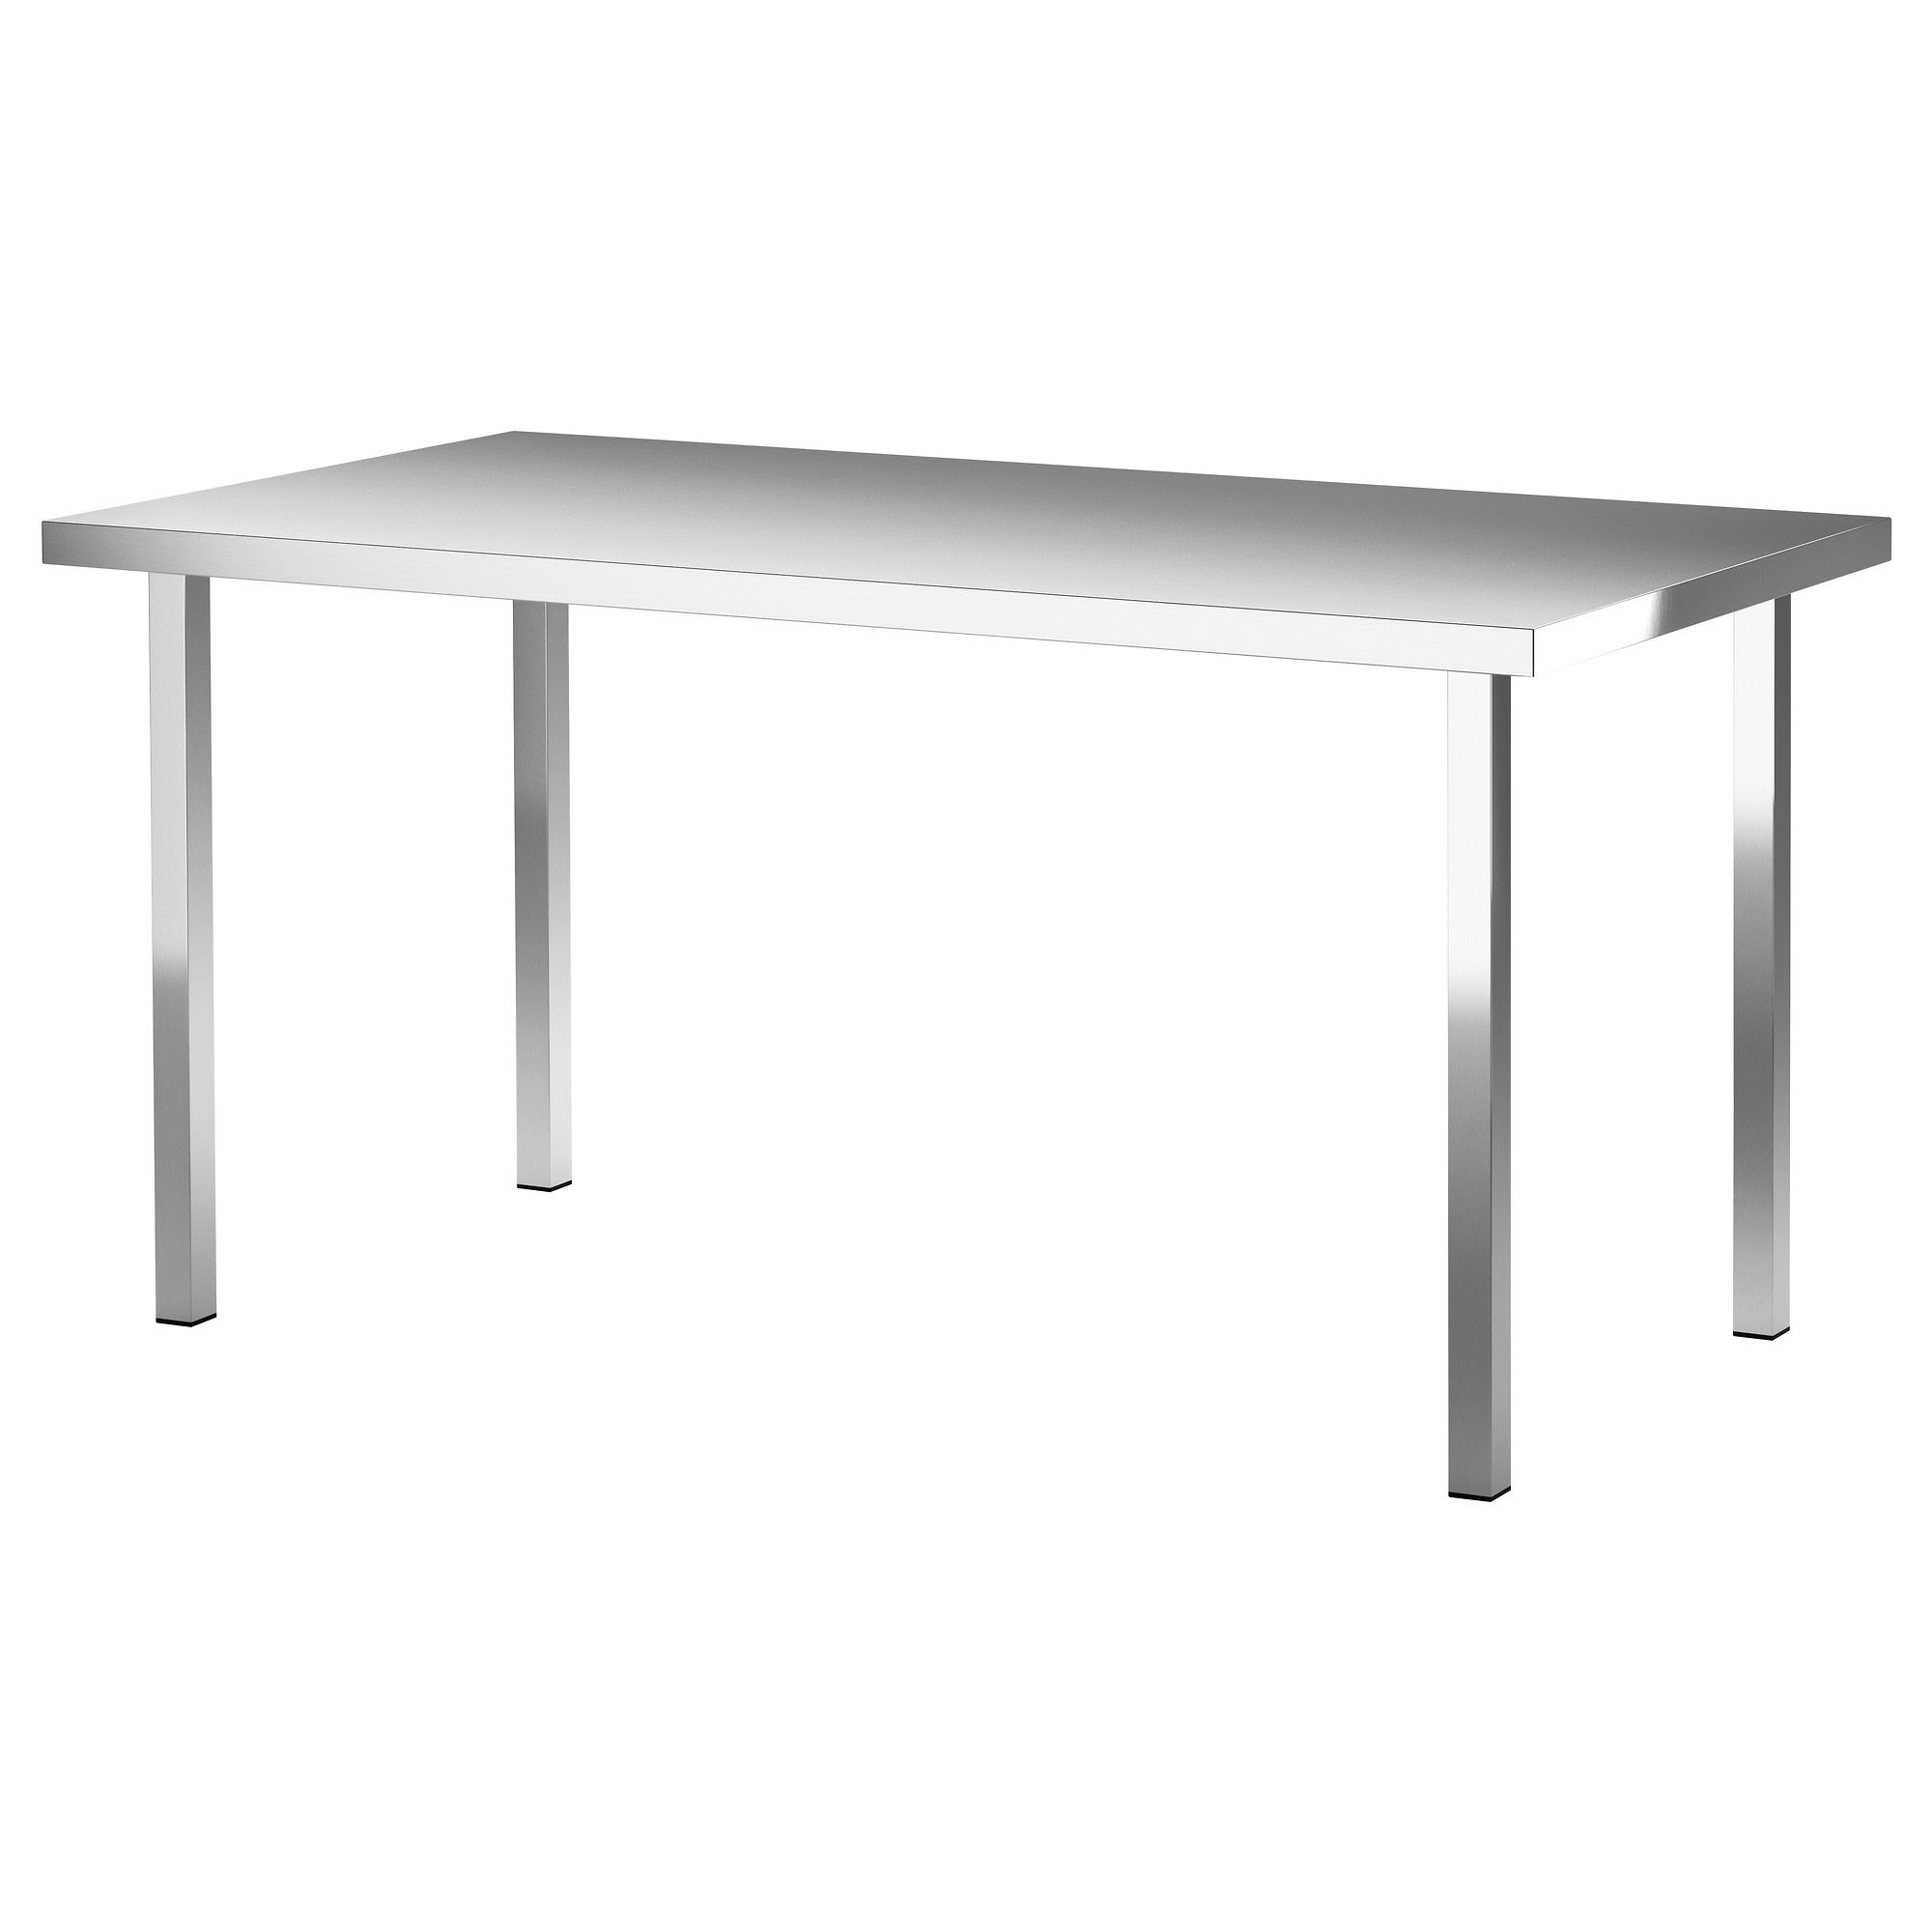 Really Basic Desks In Stainless But Maybe We Need More Features